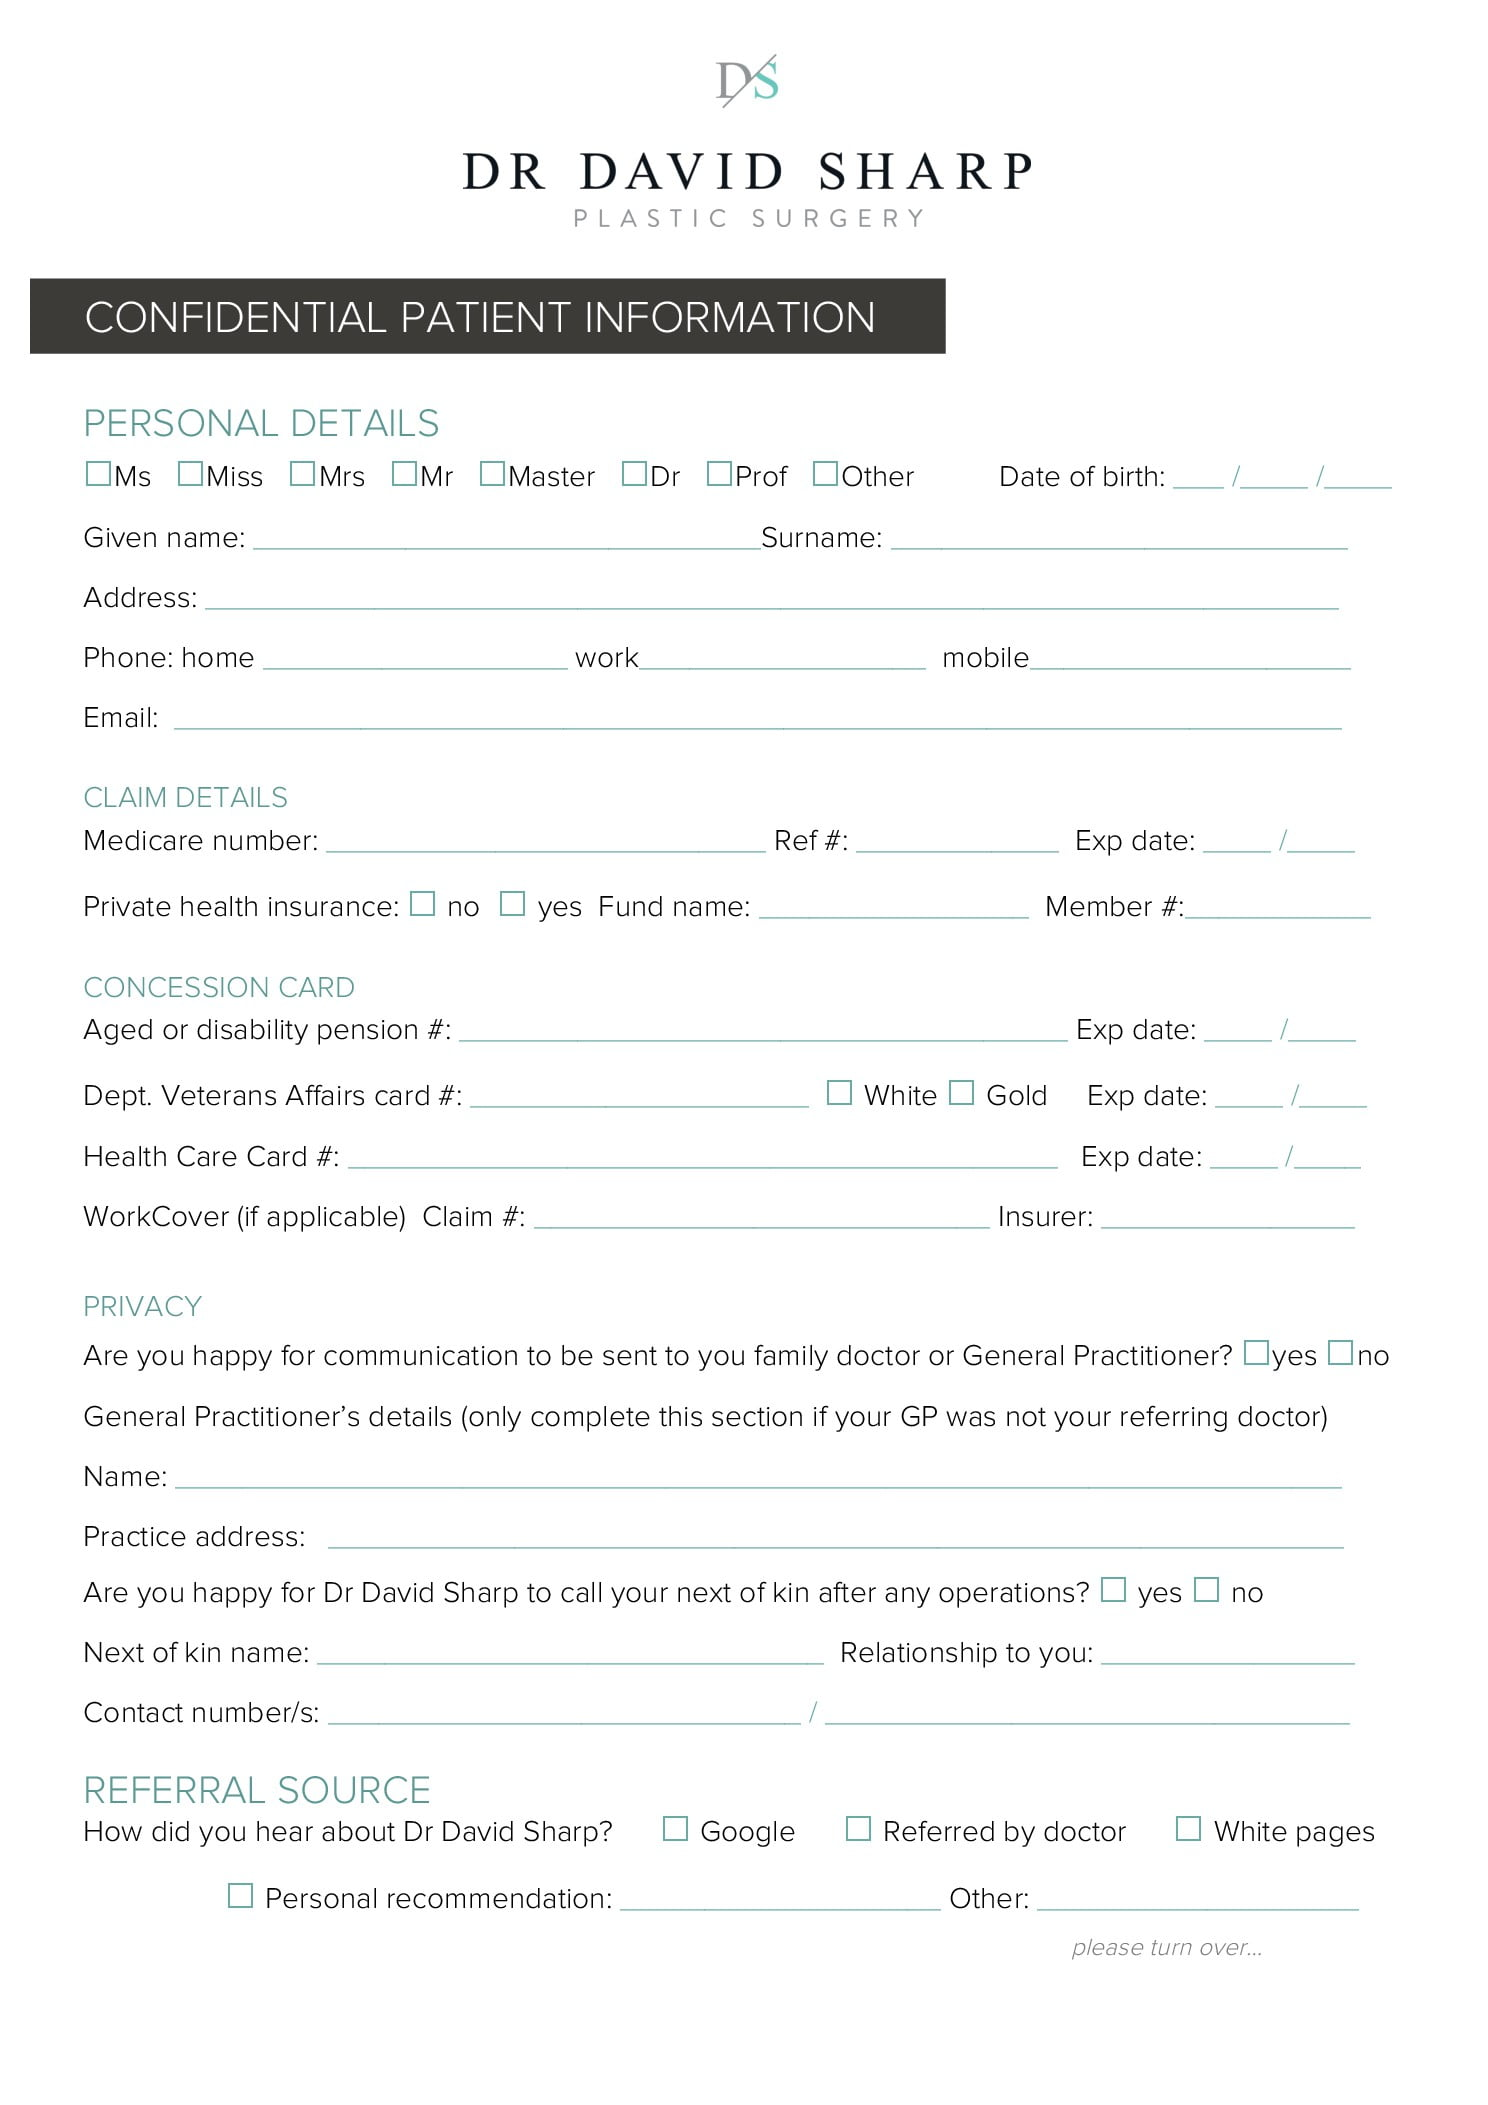 New Patient Registration Form Dr David Sharp